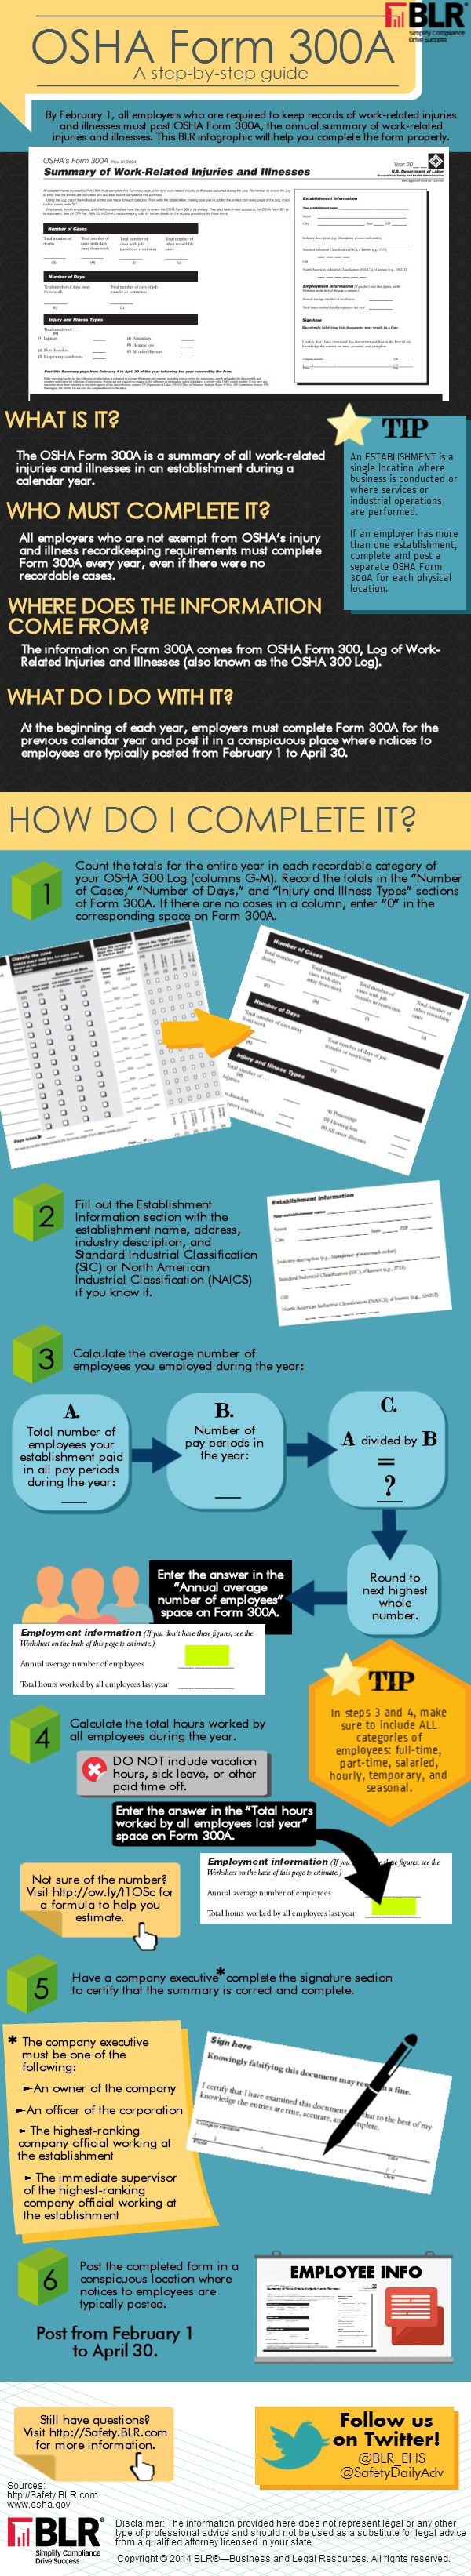 Safety.BLR - How to fill out your OSHA Form 300A Infographic.